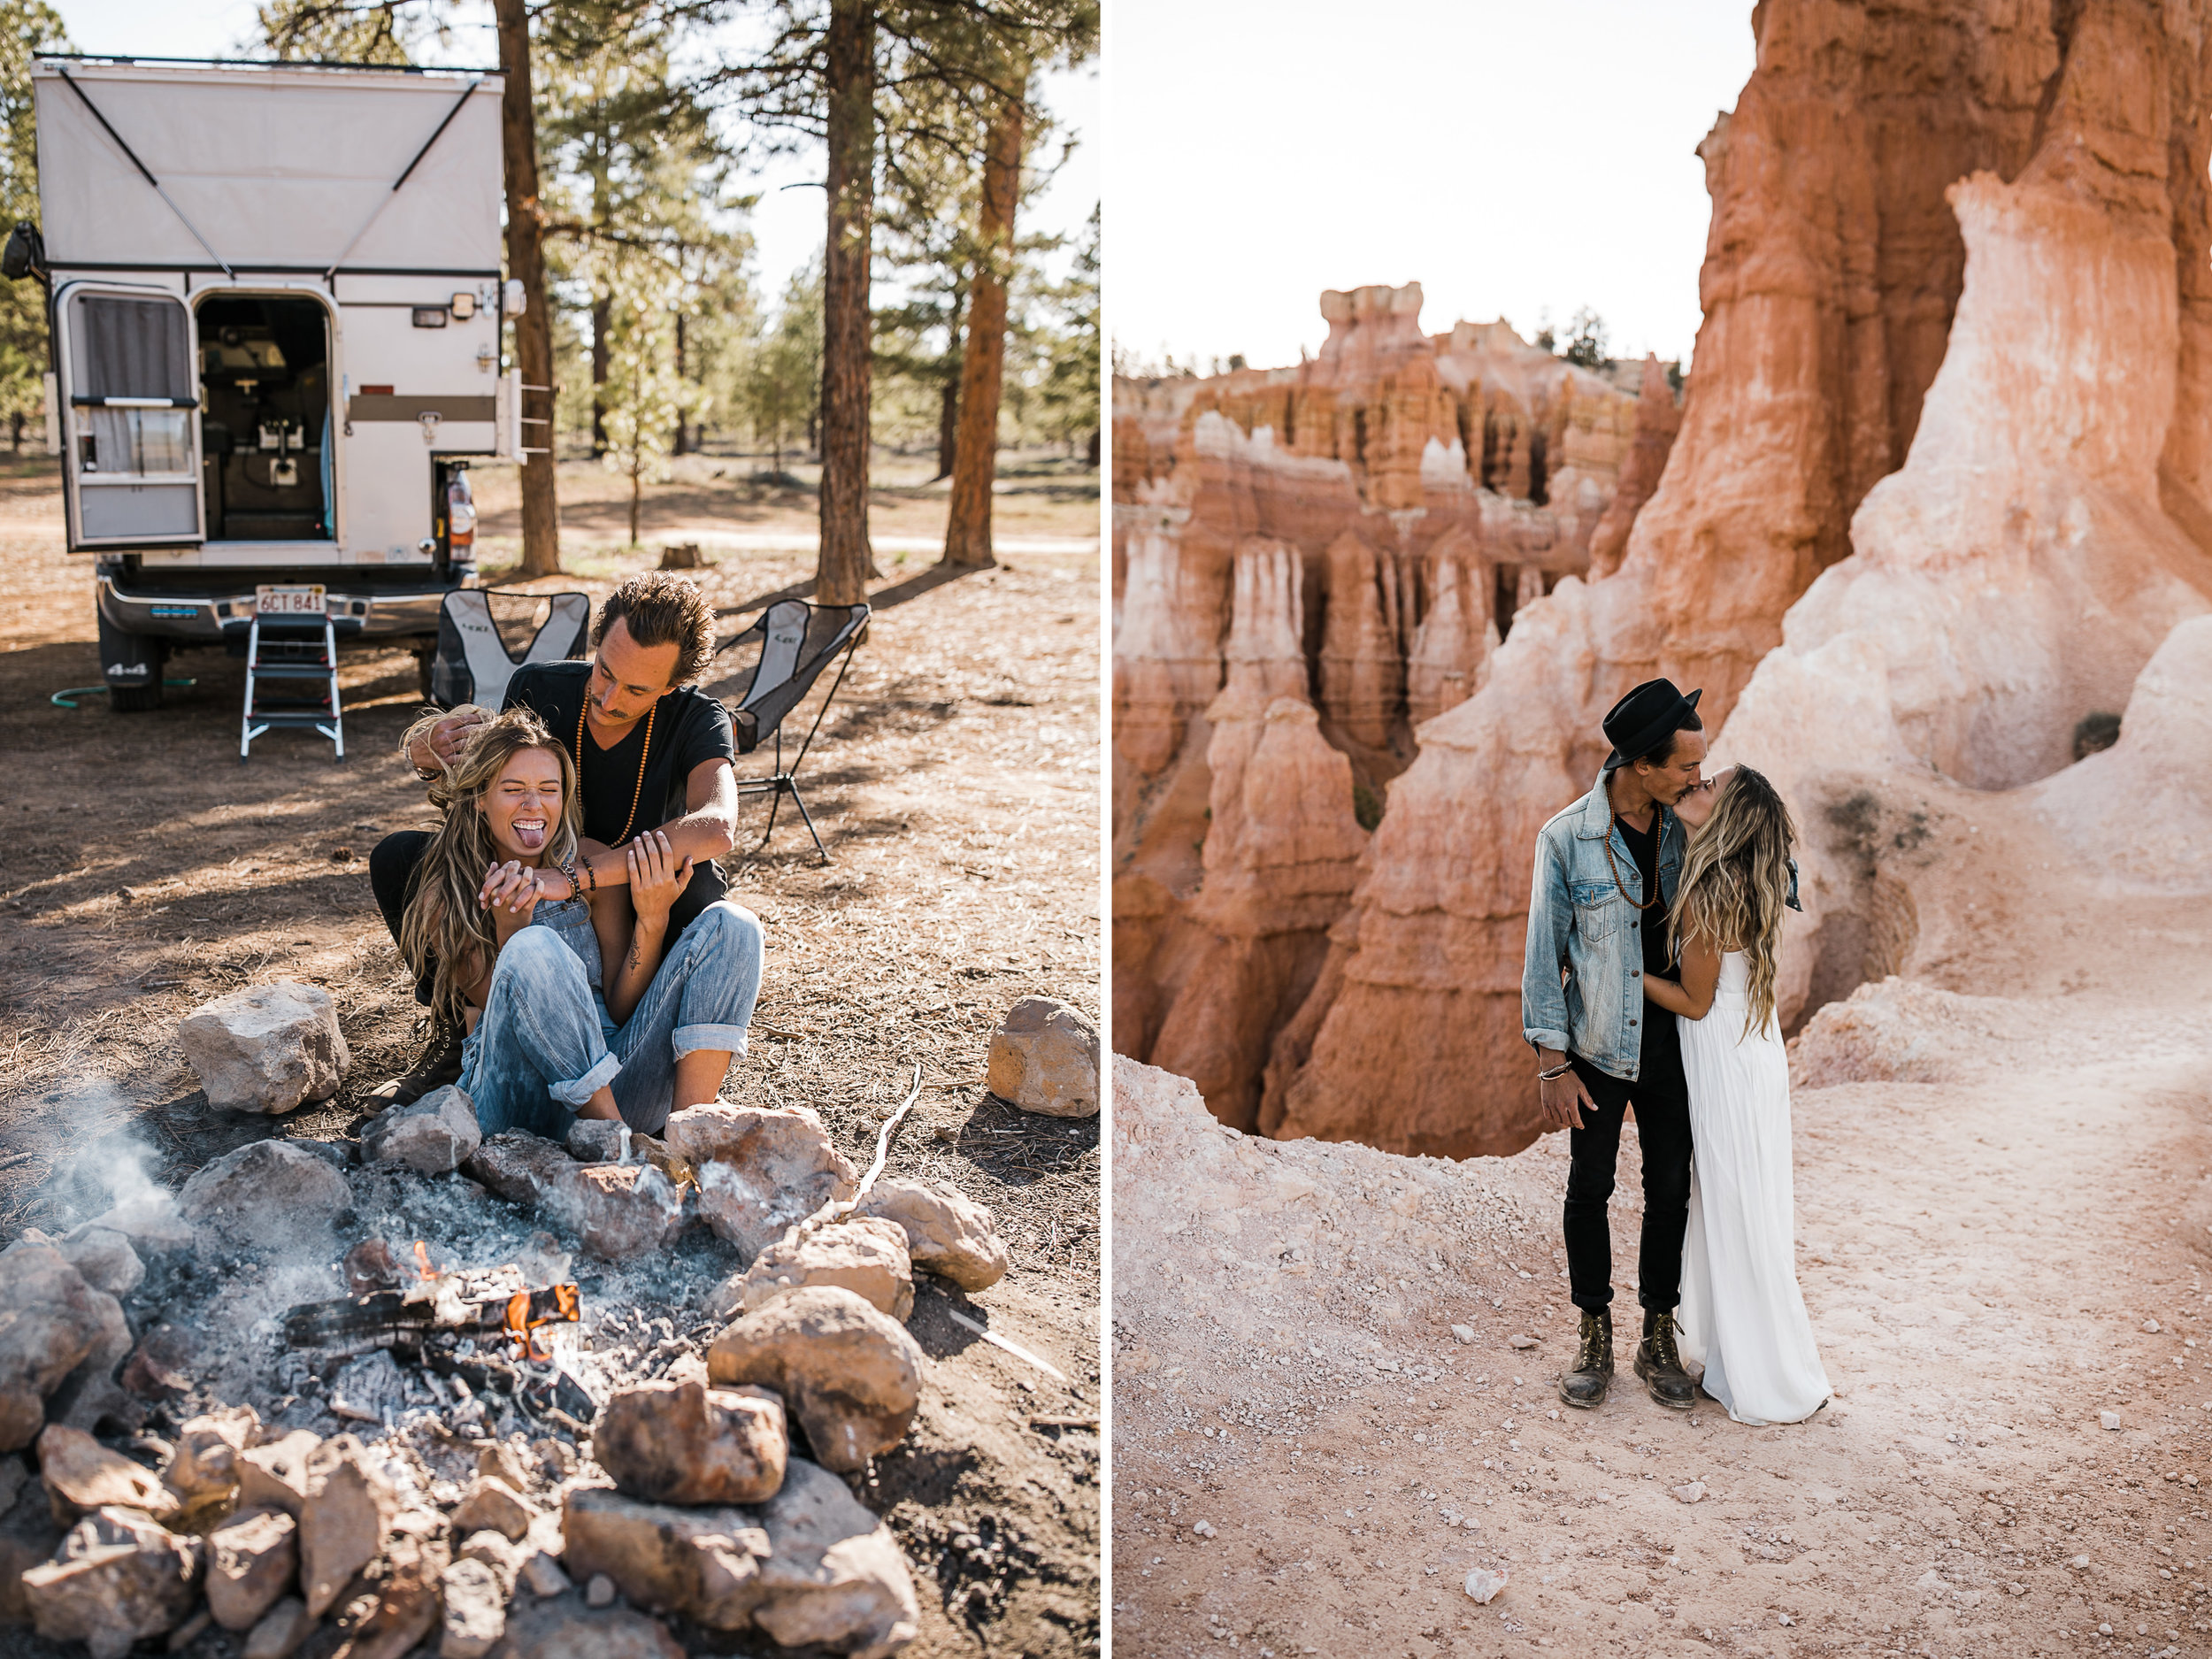 Vanlife-Photo-Session-Inspiration-Bryce-Canyon-National-Park-Utah-Hearnes-Adventure-Photography-2.jpg